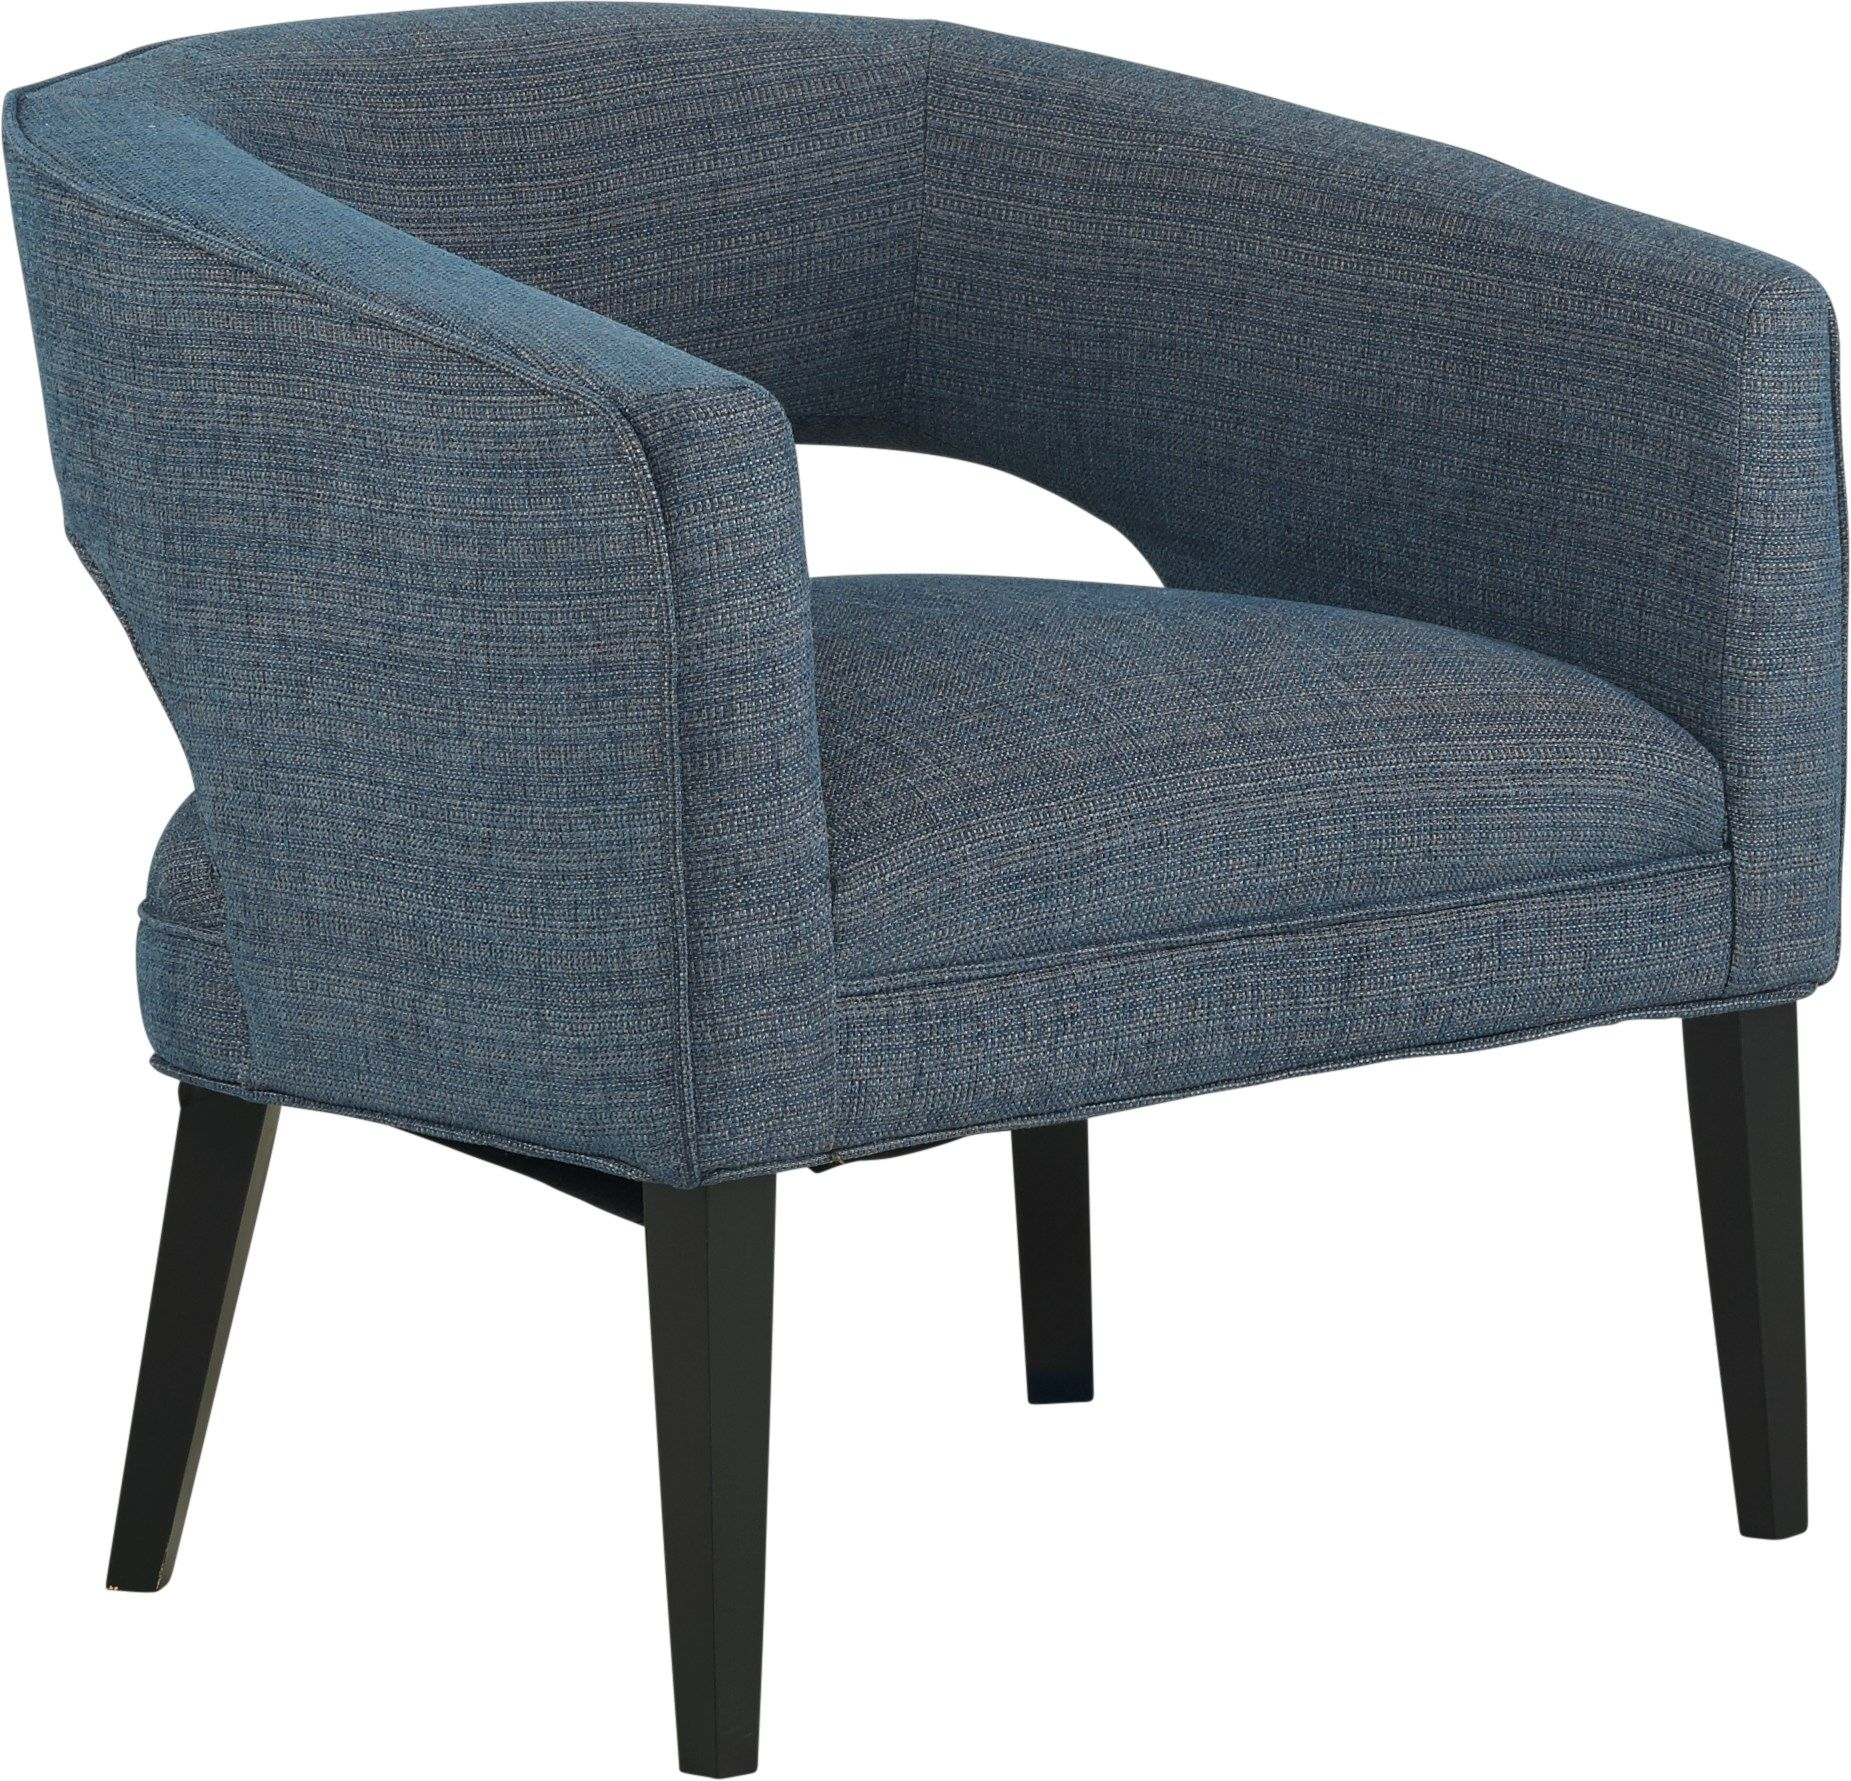 Dressler Sapphire Accent Chair .177.0. 30W X 27D X 29.5H. Find Affordable  Accent Chairs For Your Home That Will Complement The Rest Of Your Furniture.